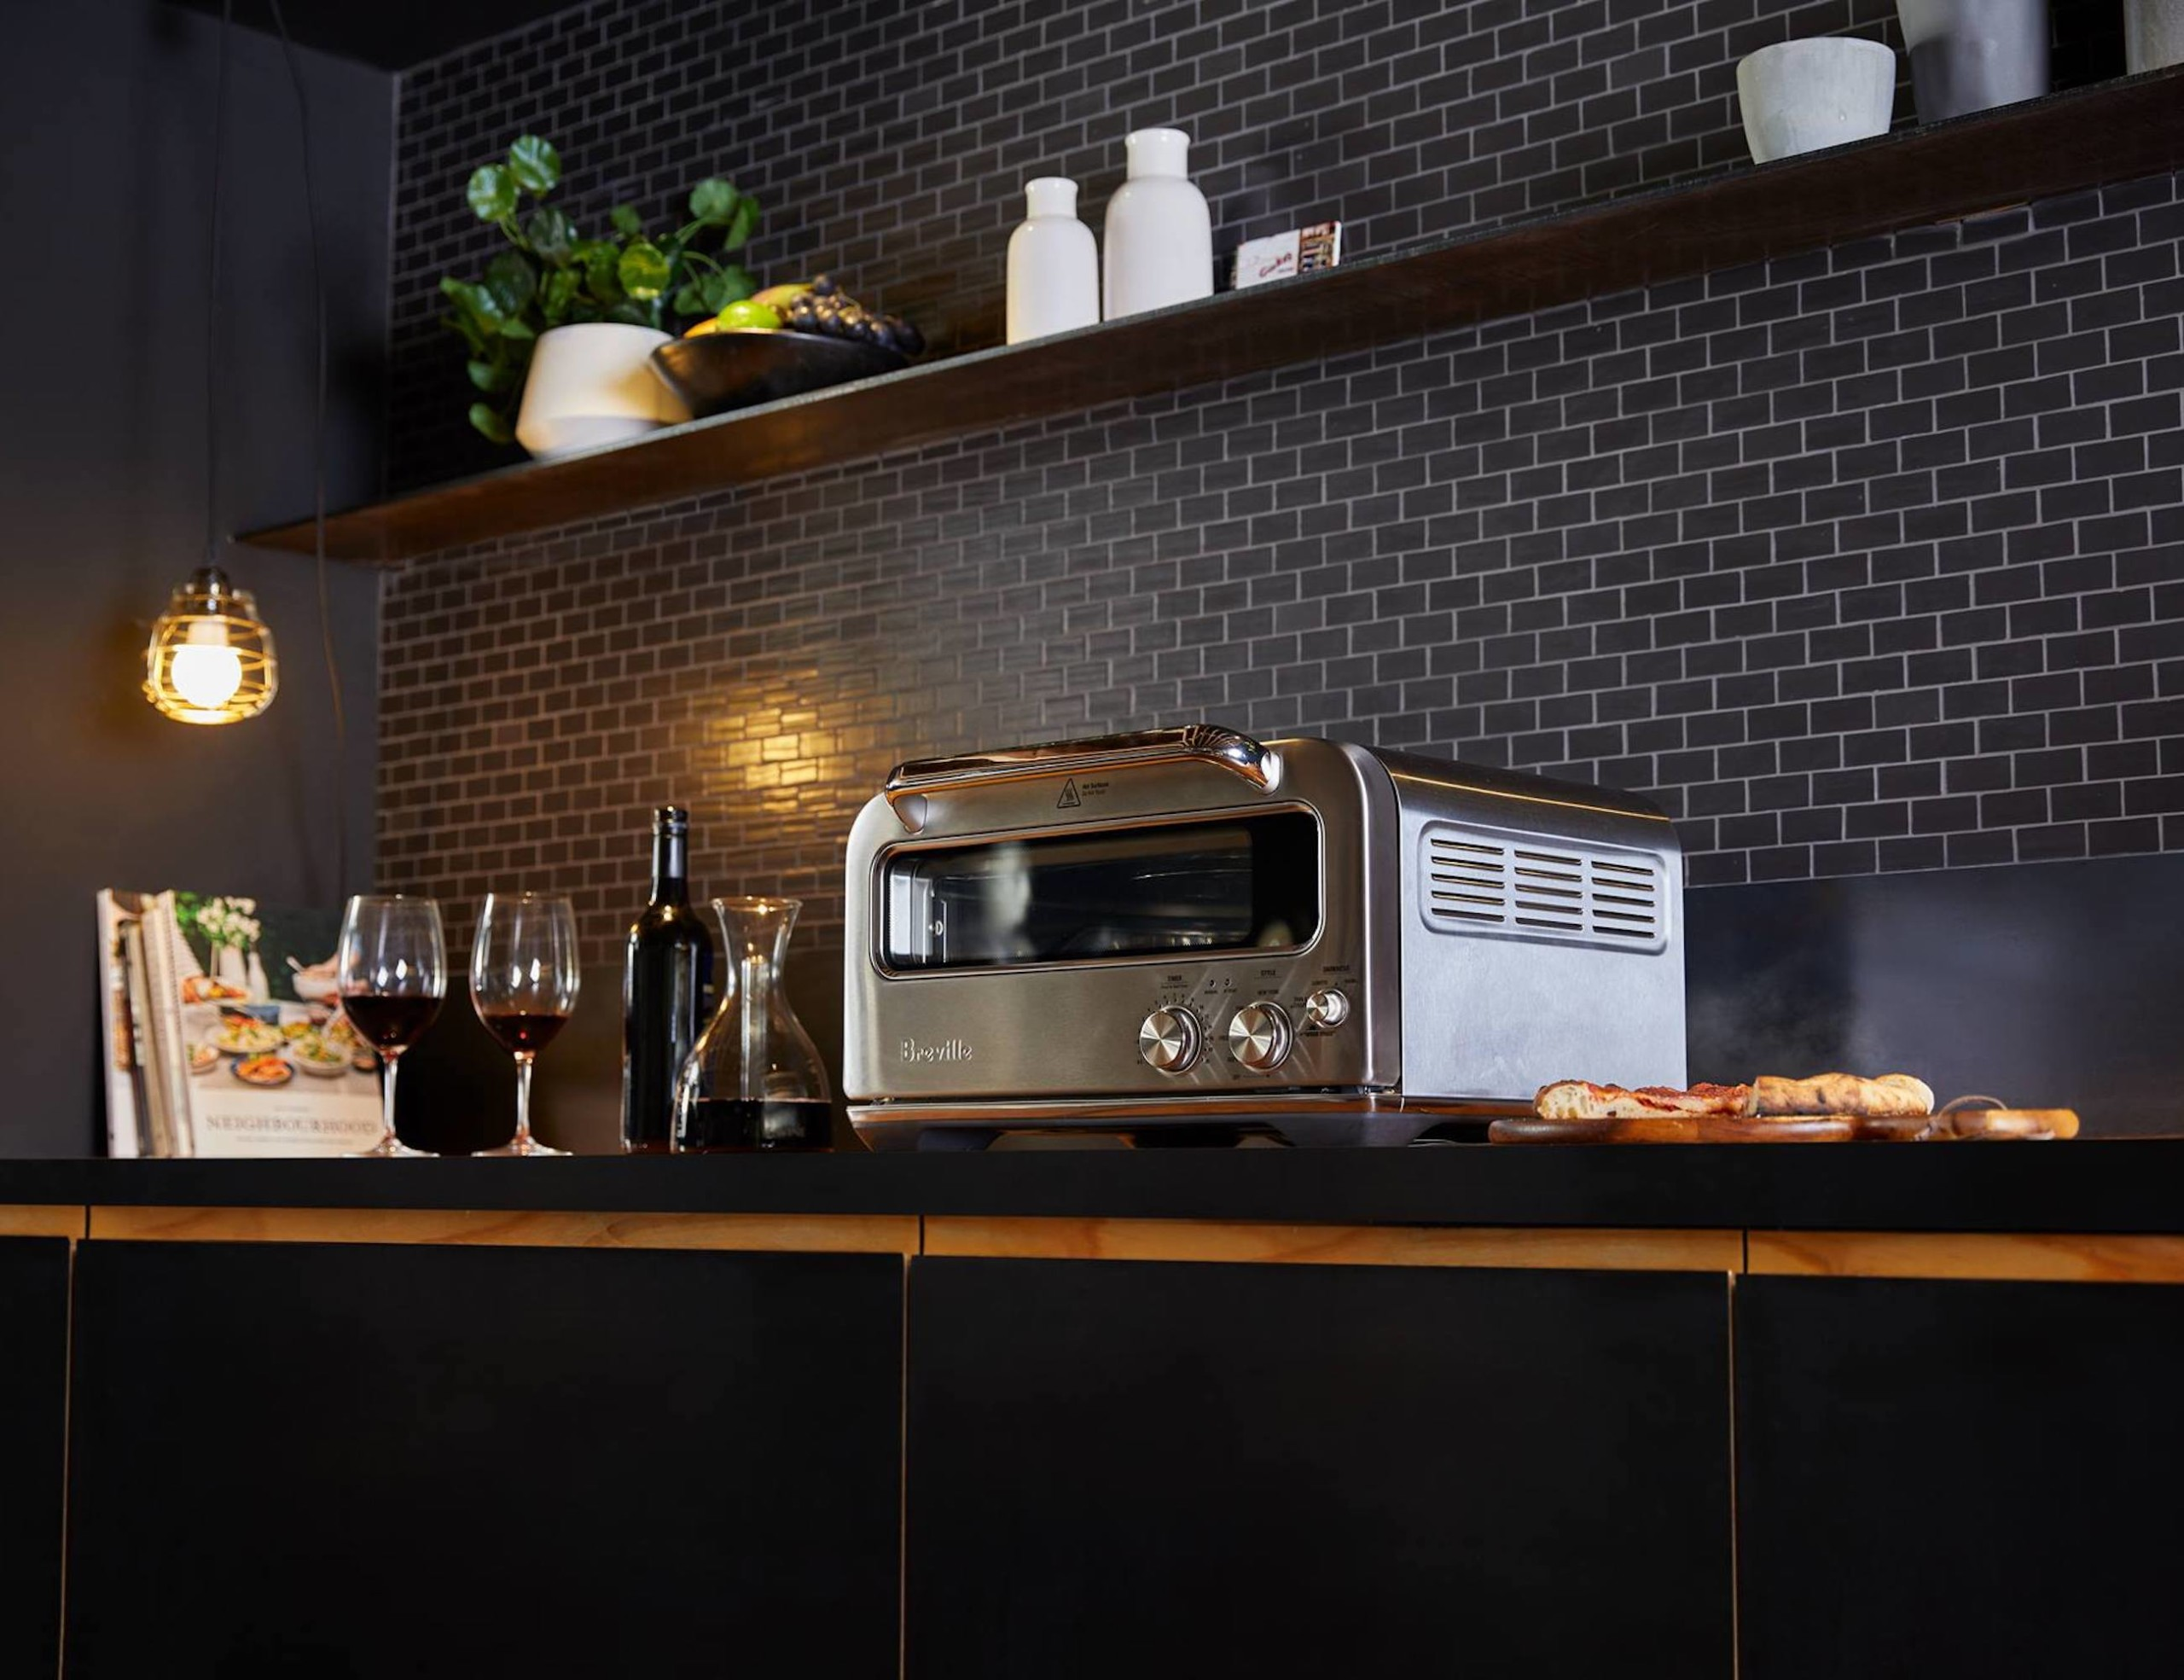 Breville Pizzaiolo Smart Countertop Pizza Oven